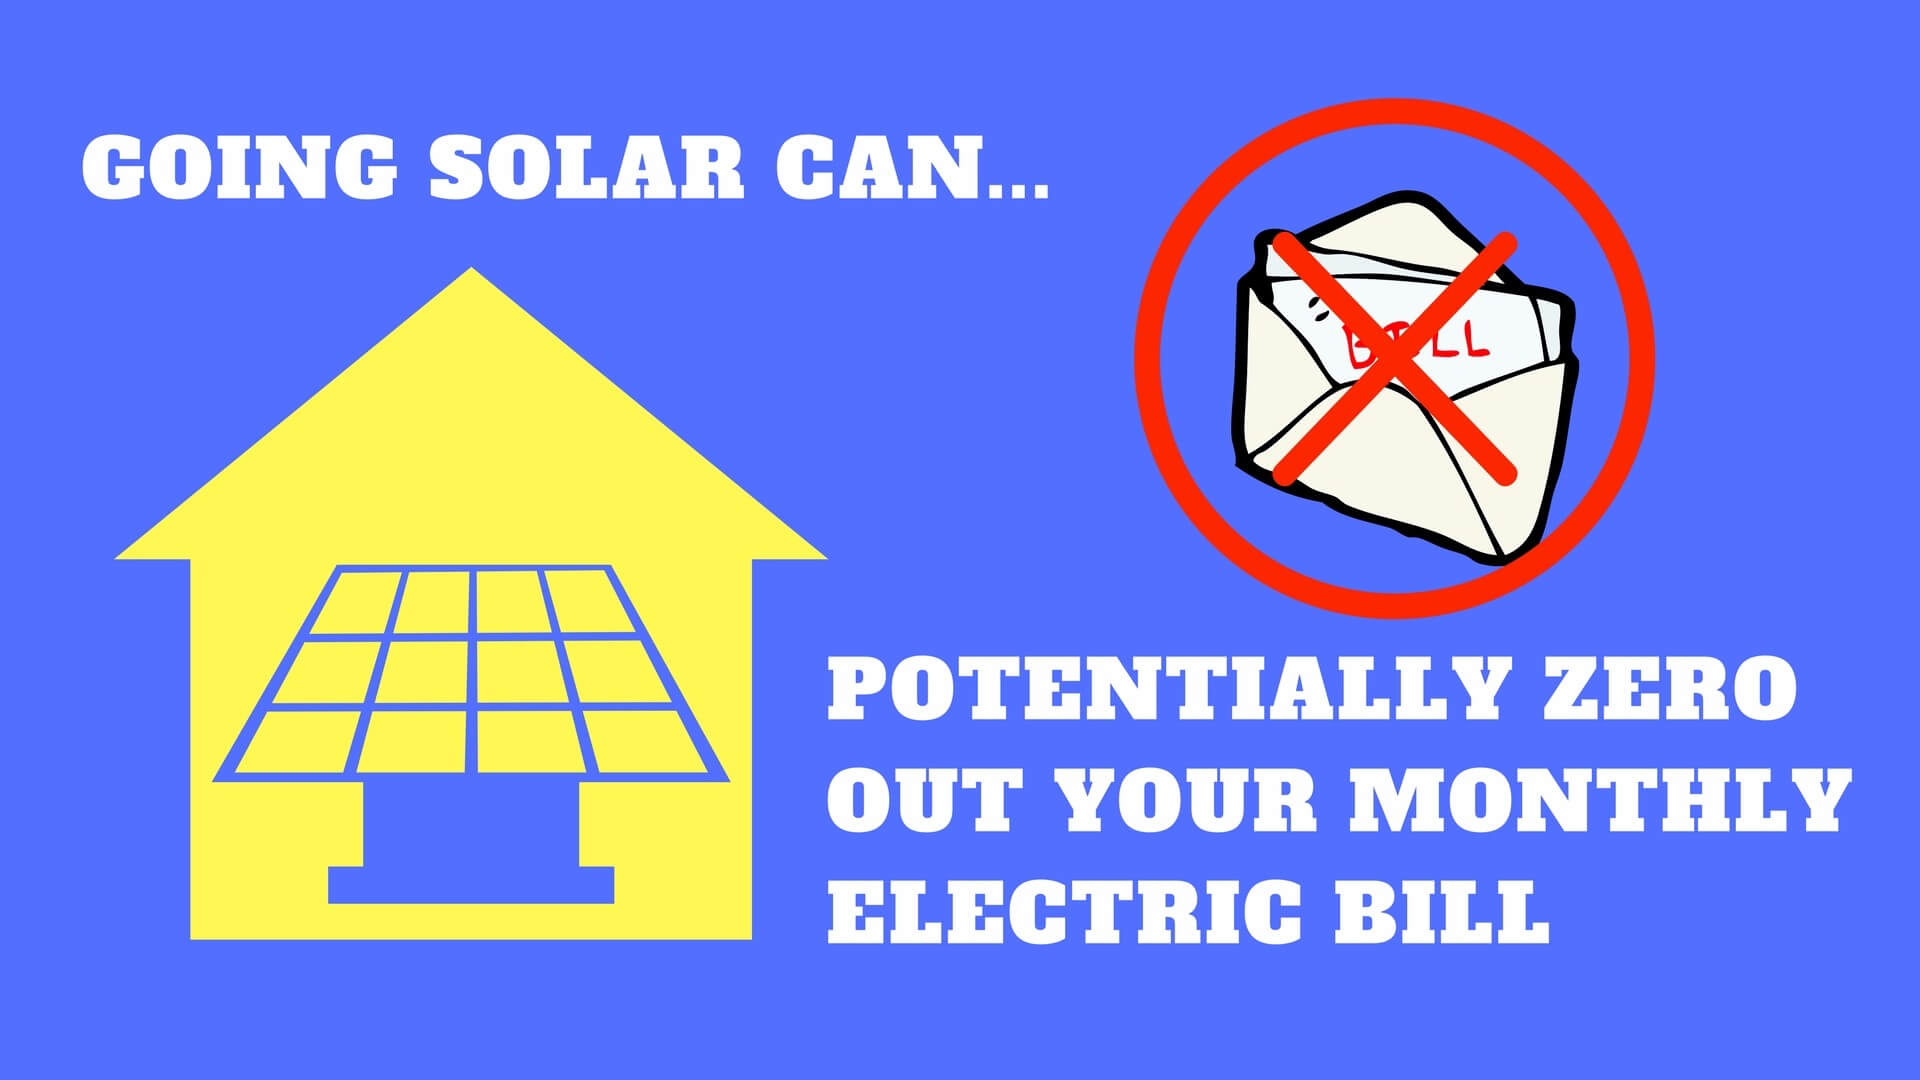 Installing solar electric system on your home or business can Substantially lower or zero out your monthly electric bill